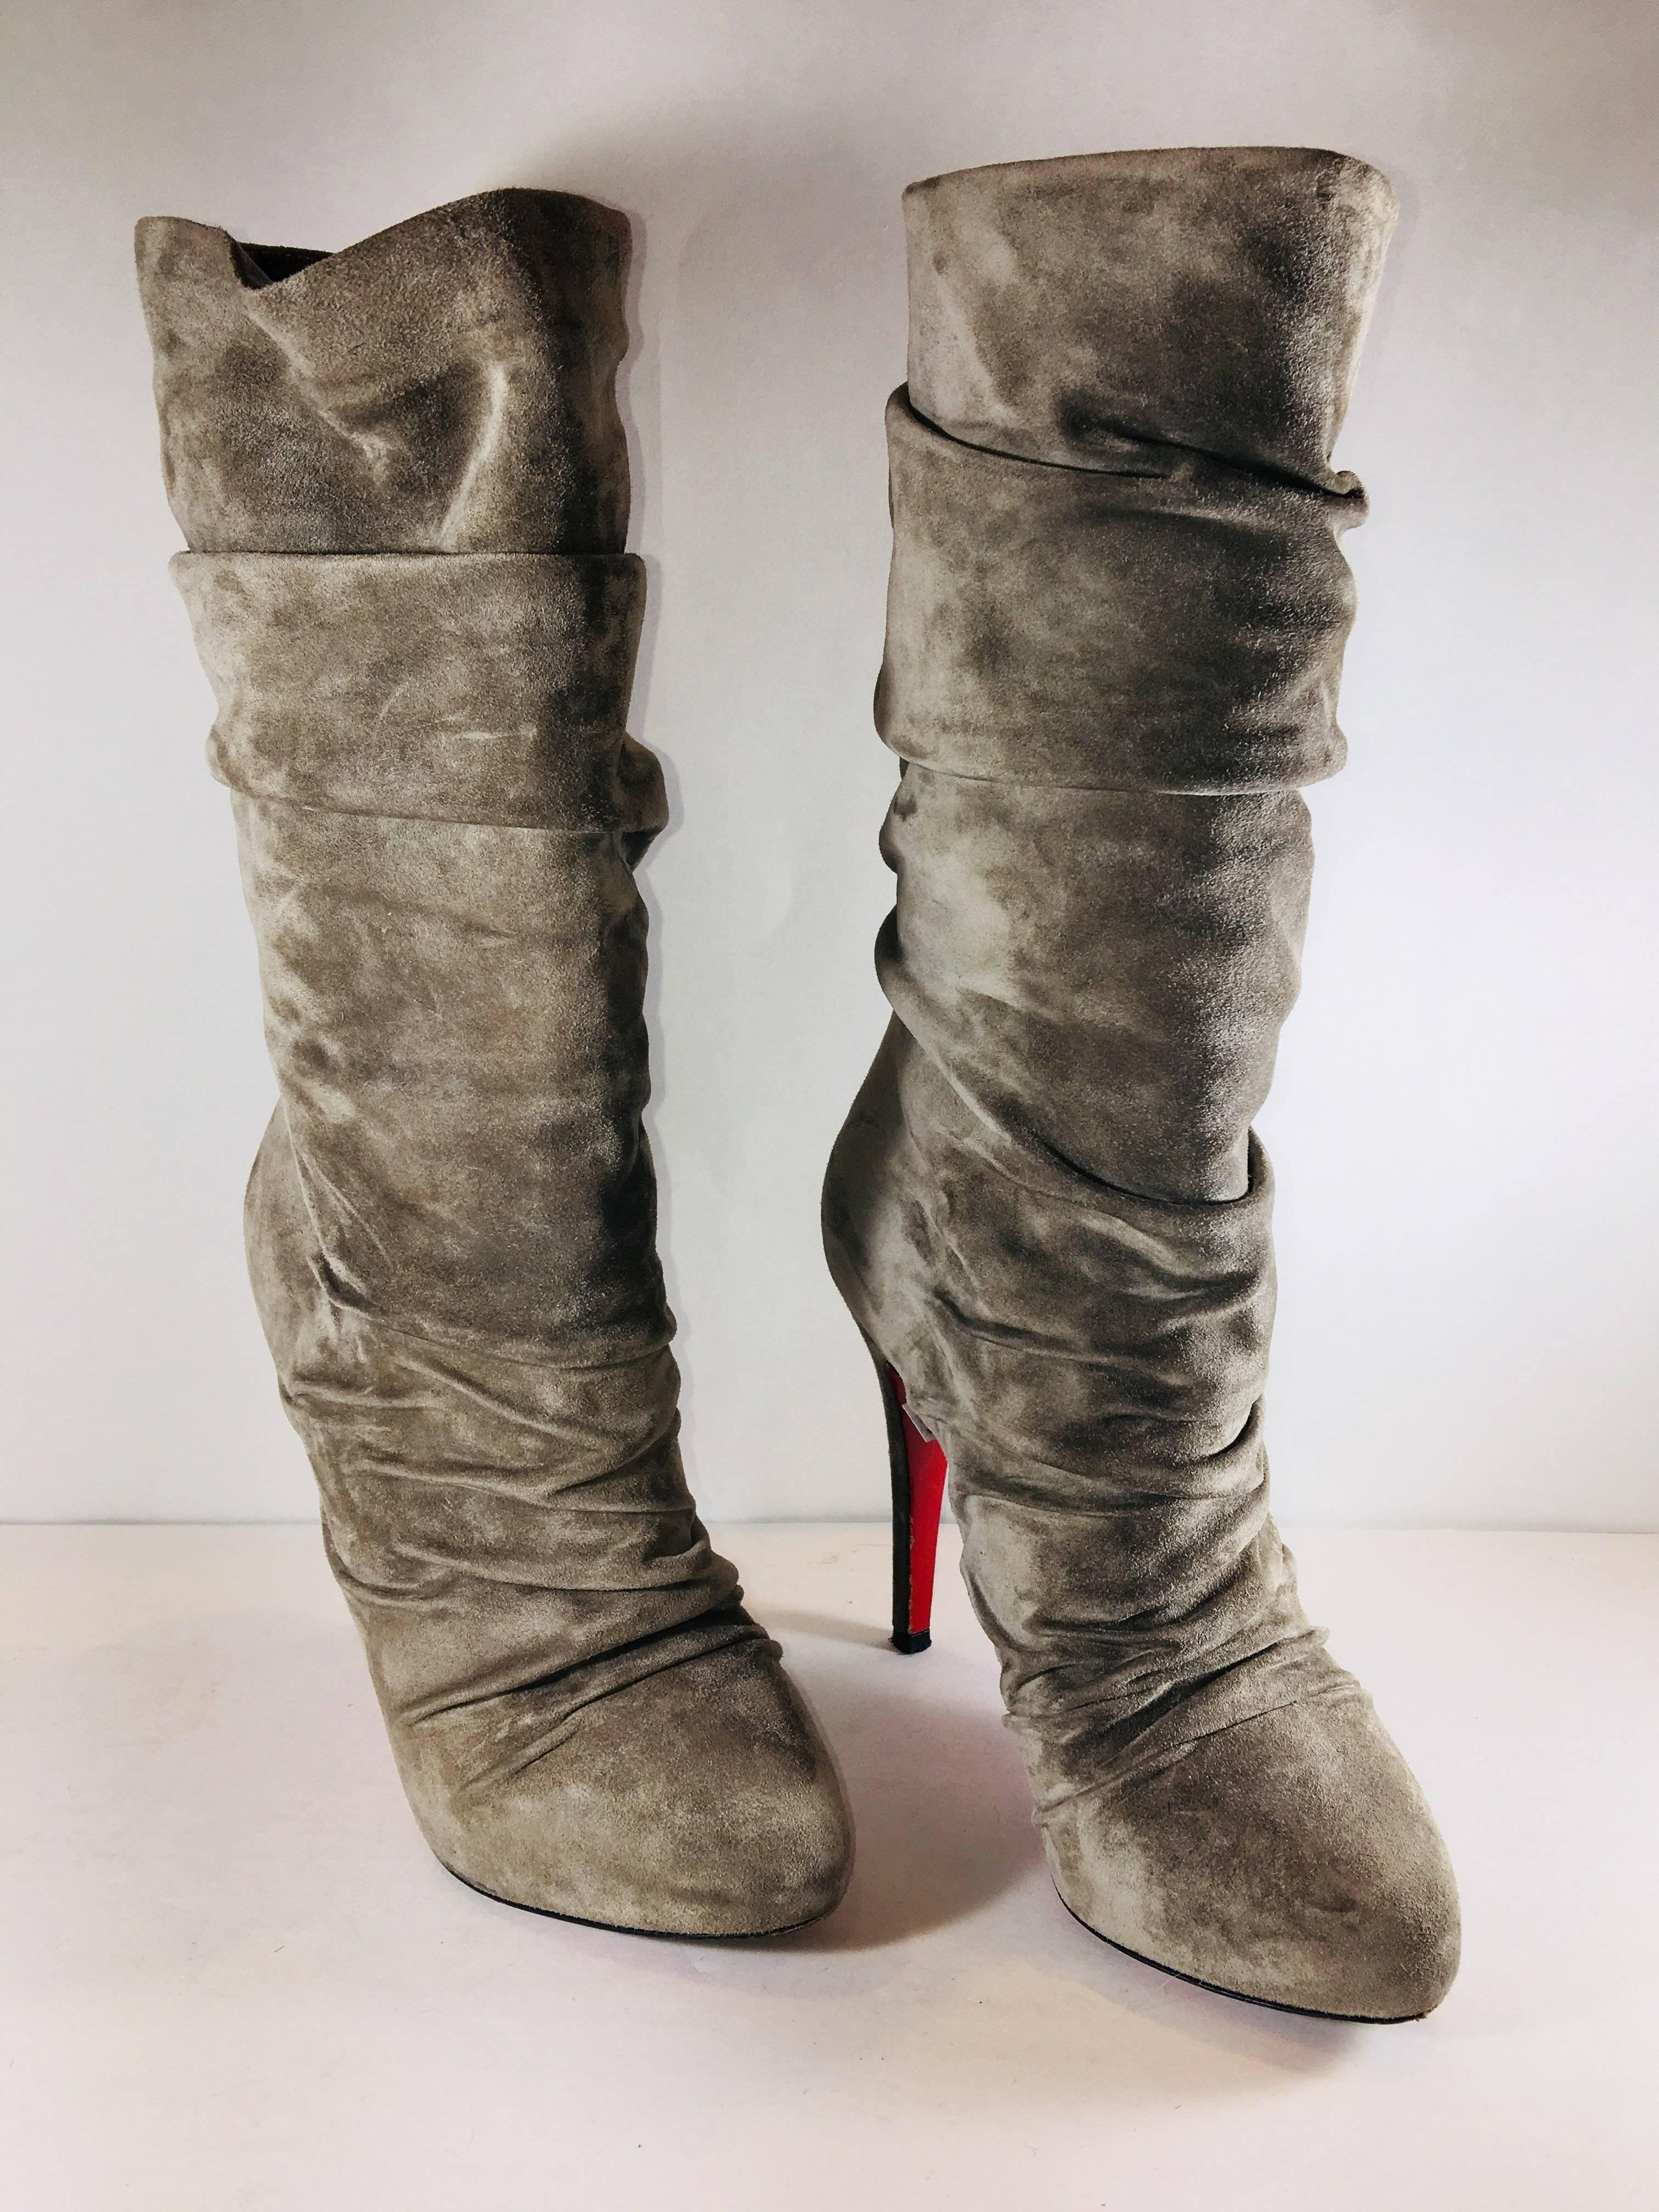 15ec098f2974 ... barneys cate trash shoes 570ec e1892  reduced christian louboutin  gathered suede mid calf boots with signature red bottom soles. f6a4e cdb8a